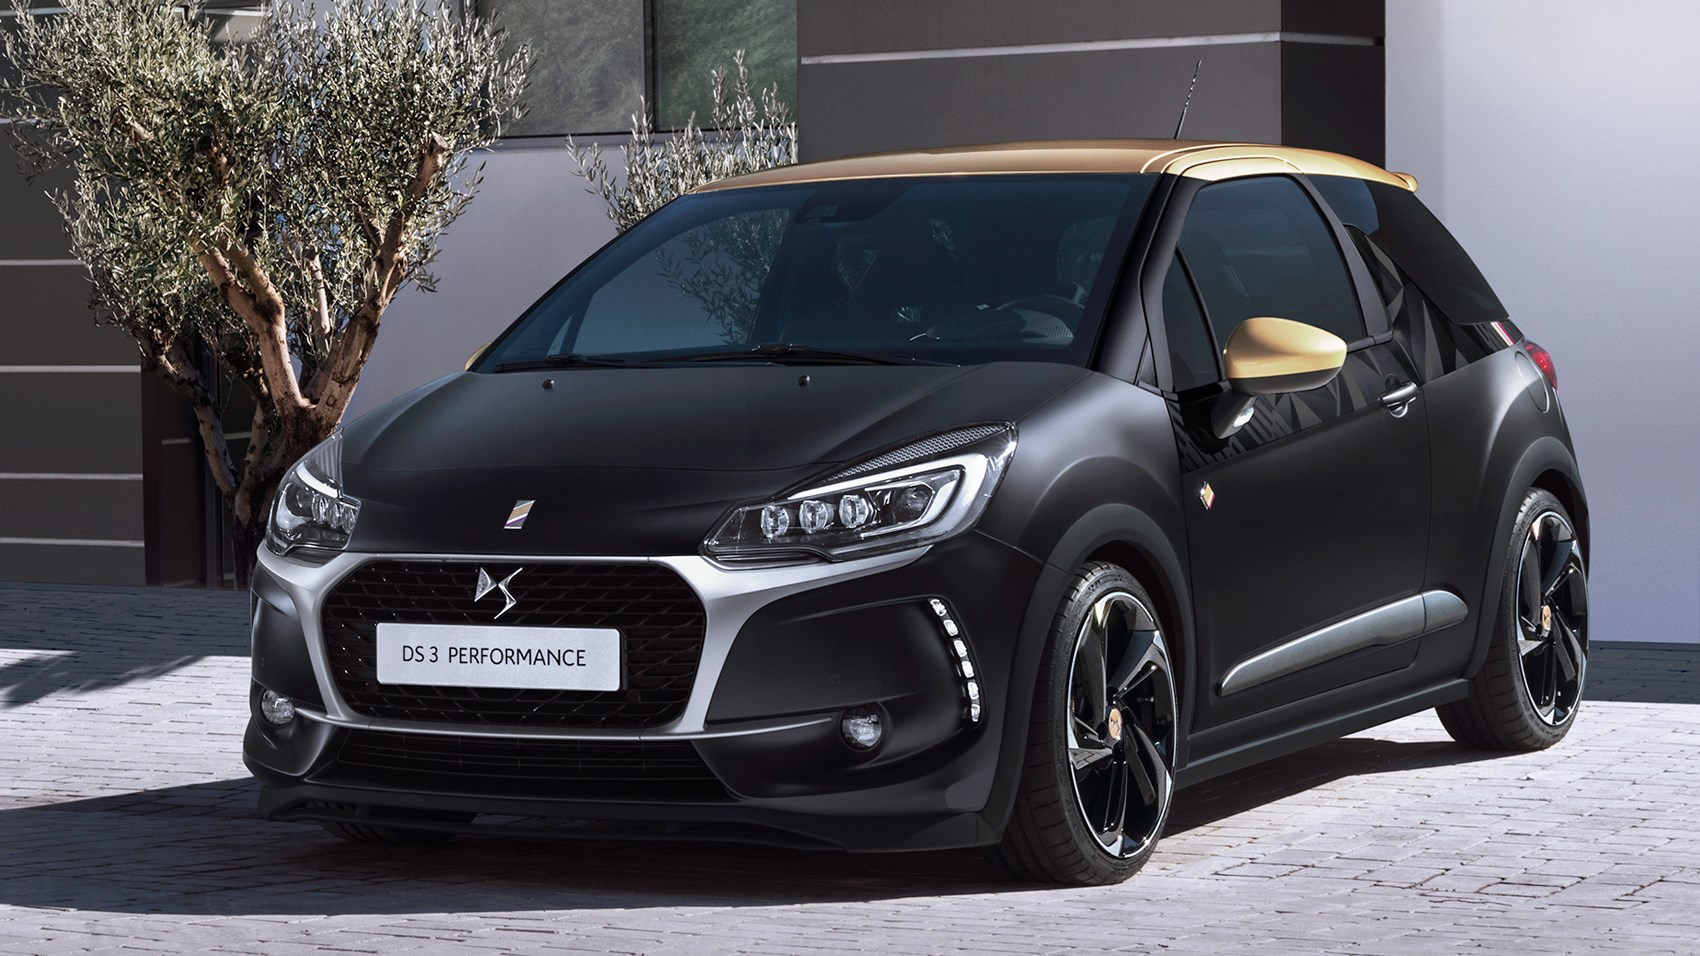 ds3 performance 2016 review by car magazine. Black Bedroom Furniture Sets. Home Design Ideas